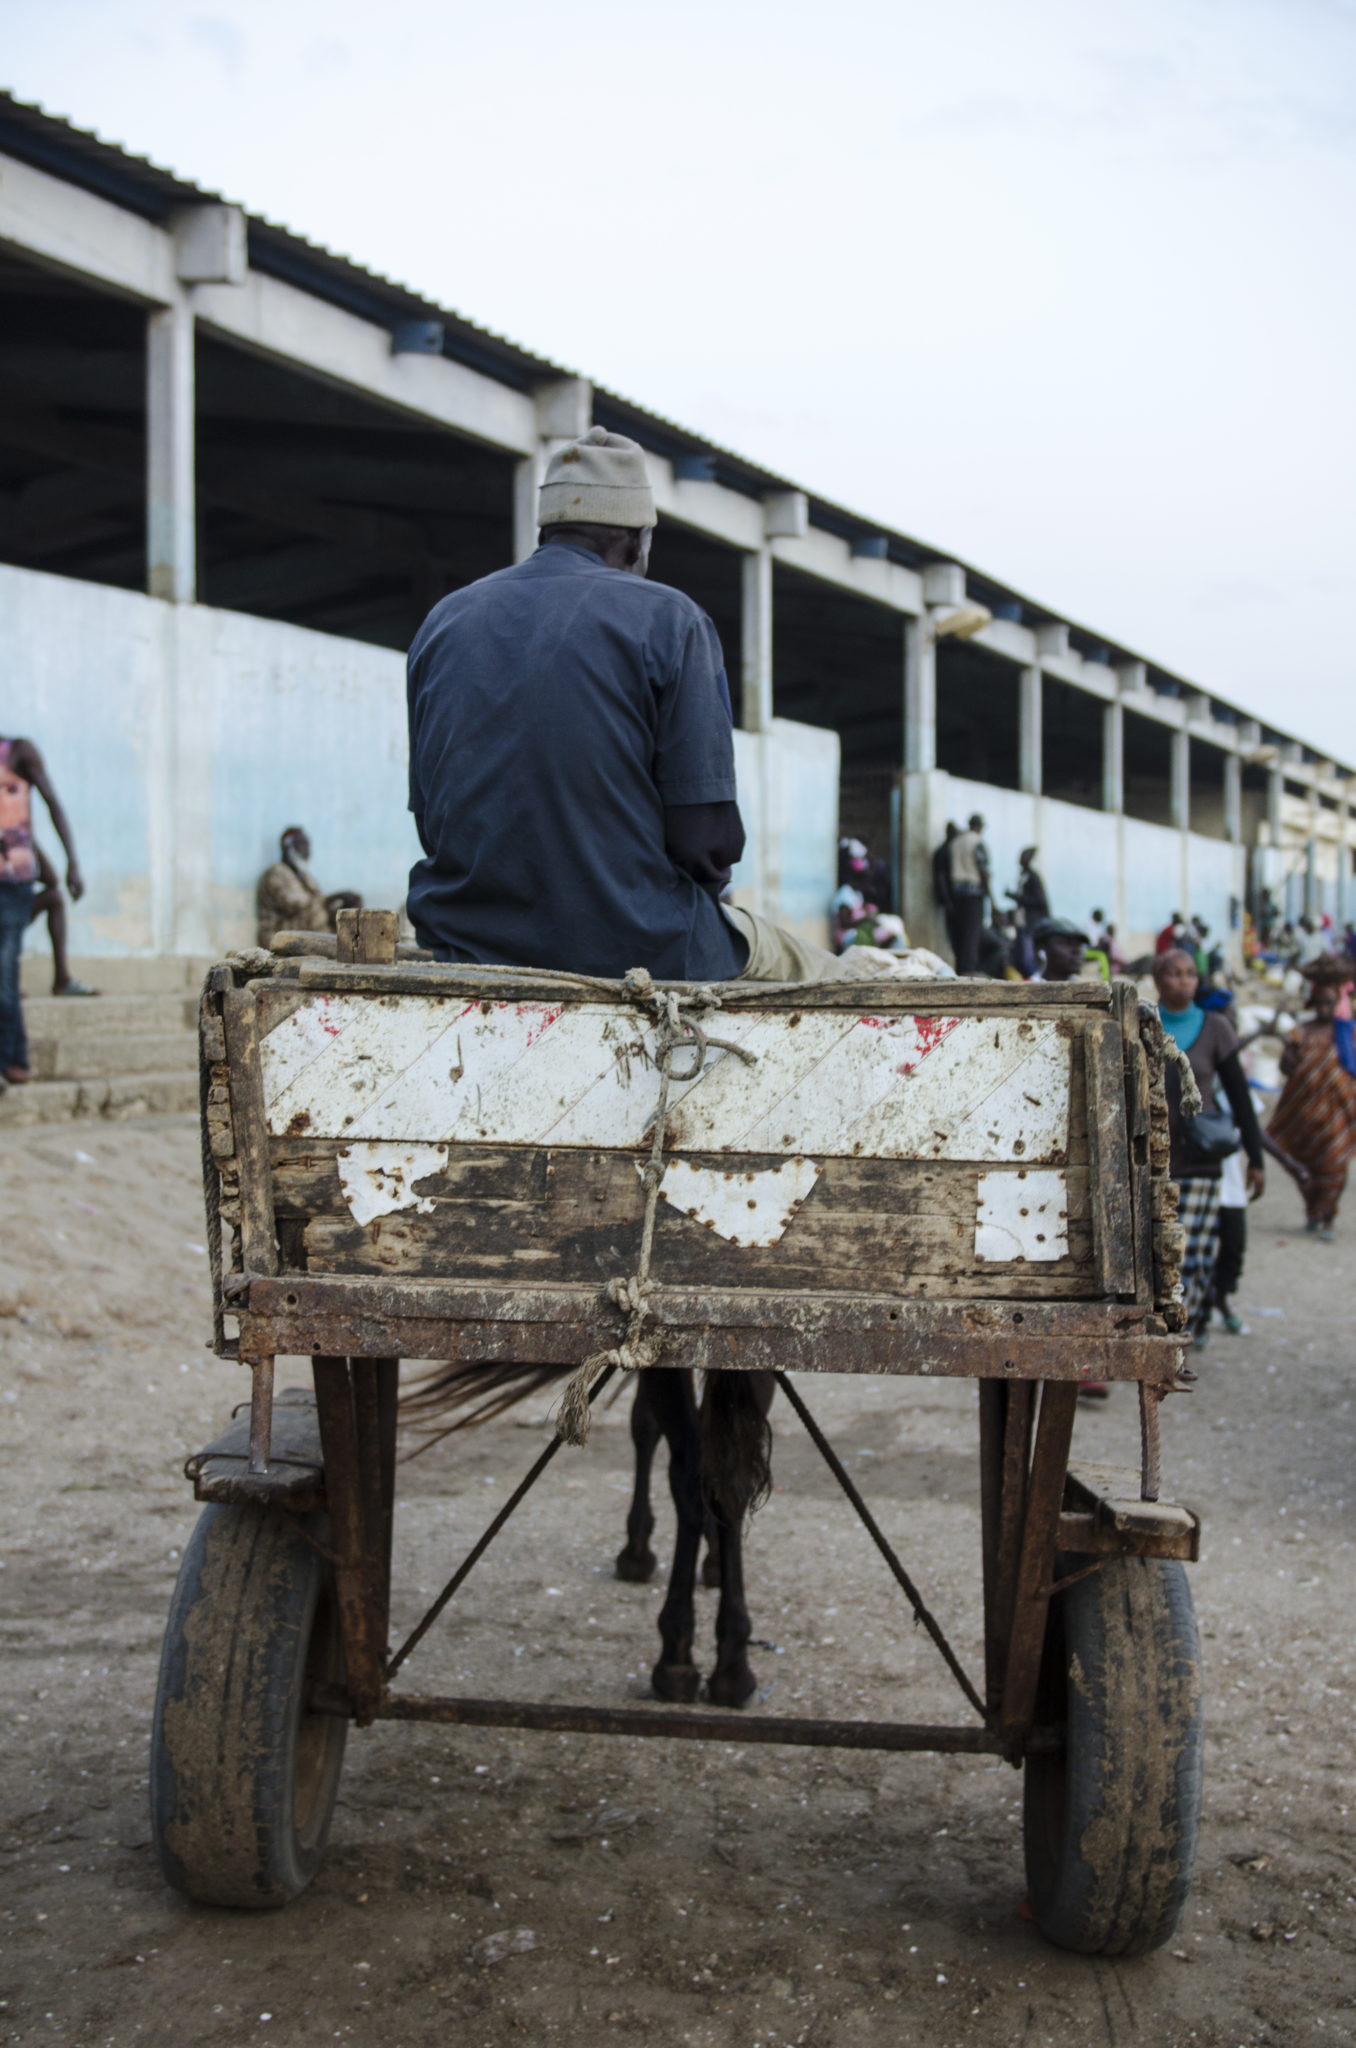 Fish-market-Mbour-horse-carriage